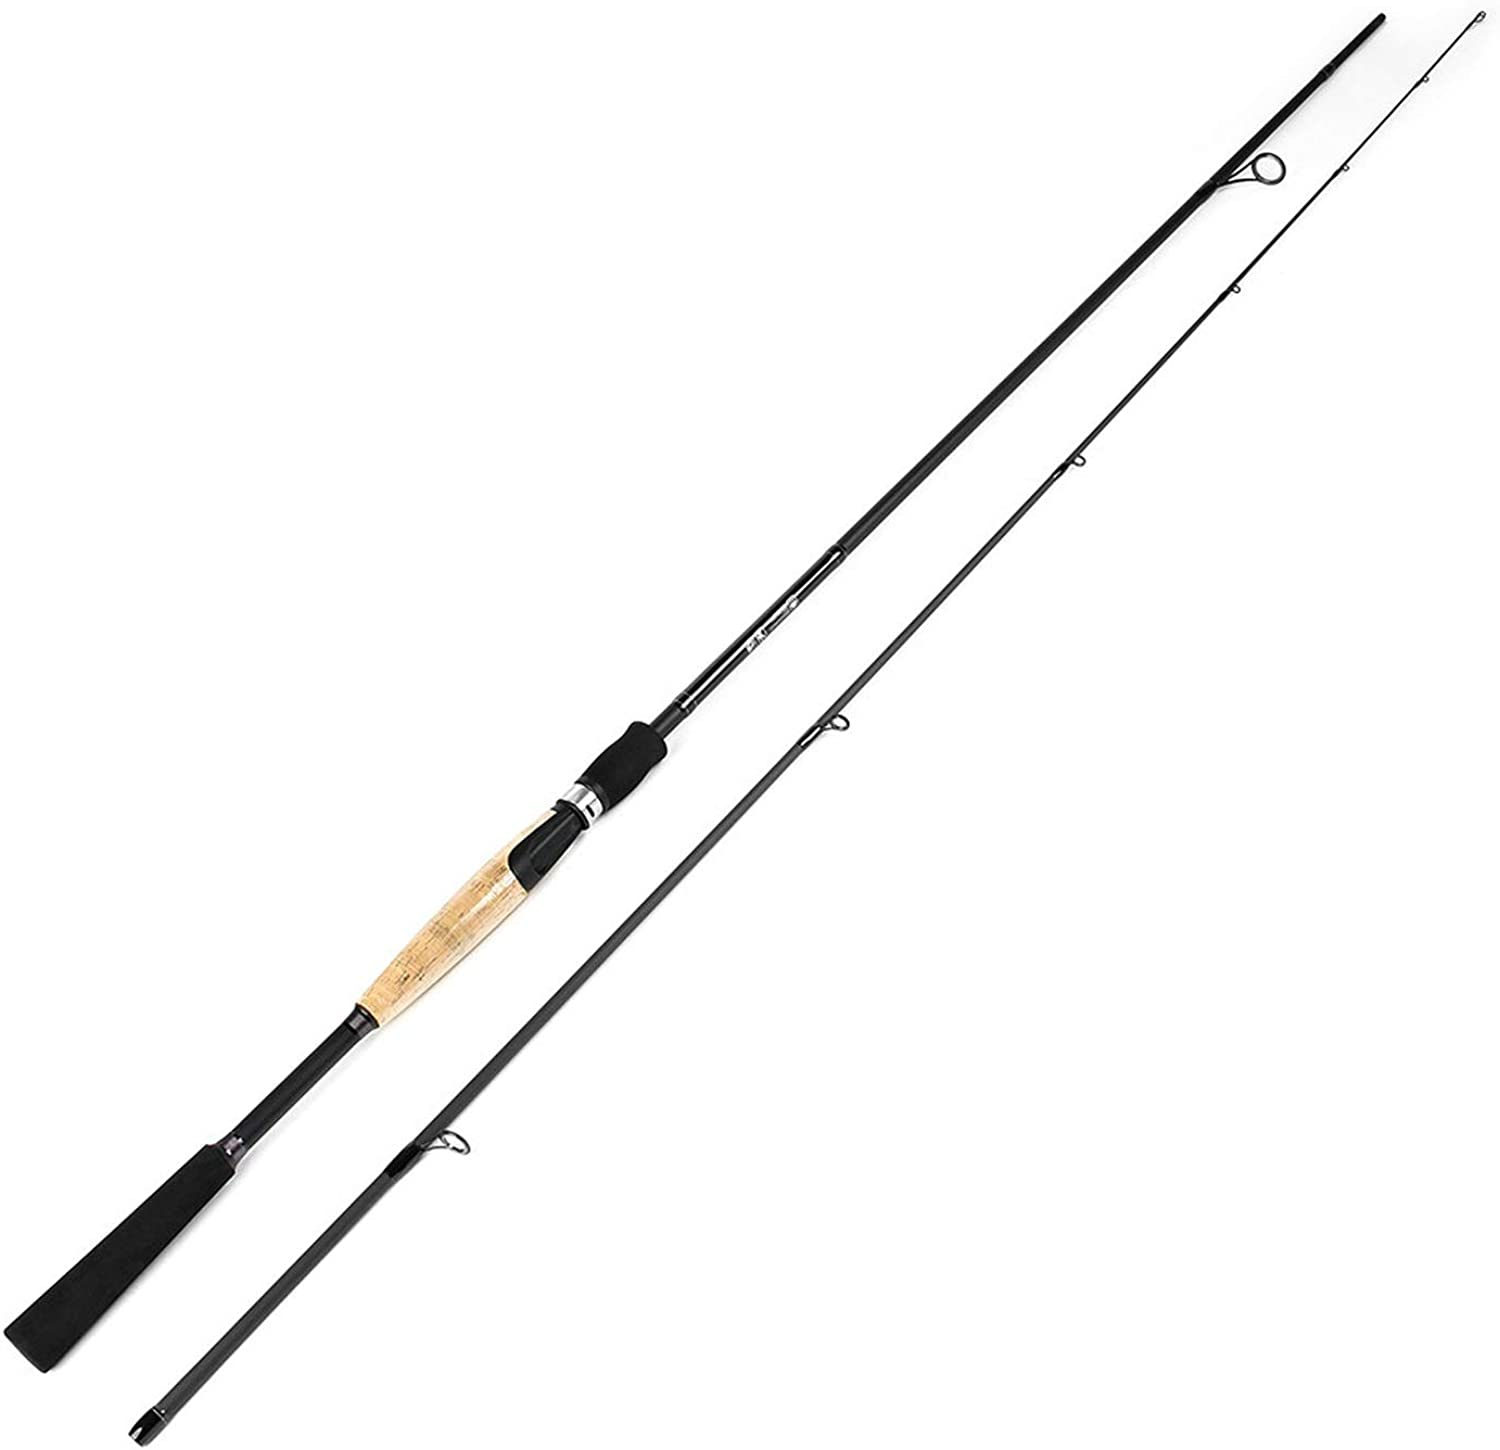 80% Carbon Spinning Fishing Rod 1.89M 2.1M 2.4M 2.7M Super Hard 2 Sections Fishing Rod for Squid Pike Fishing Pole,1.89M(317G),Russian Federation